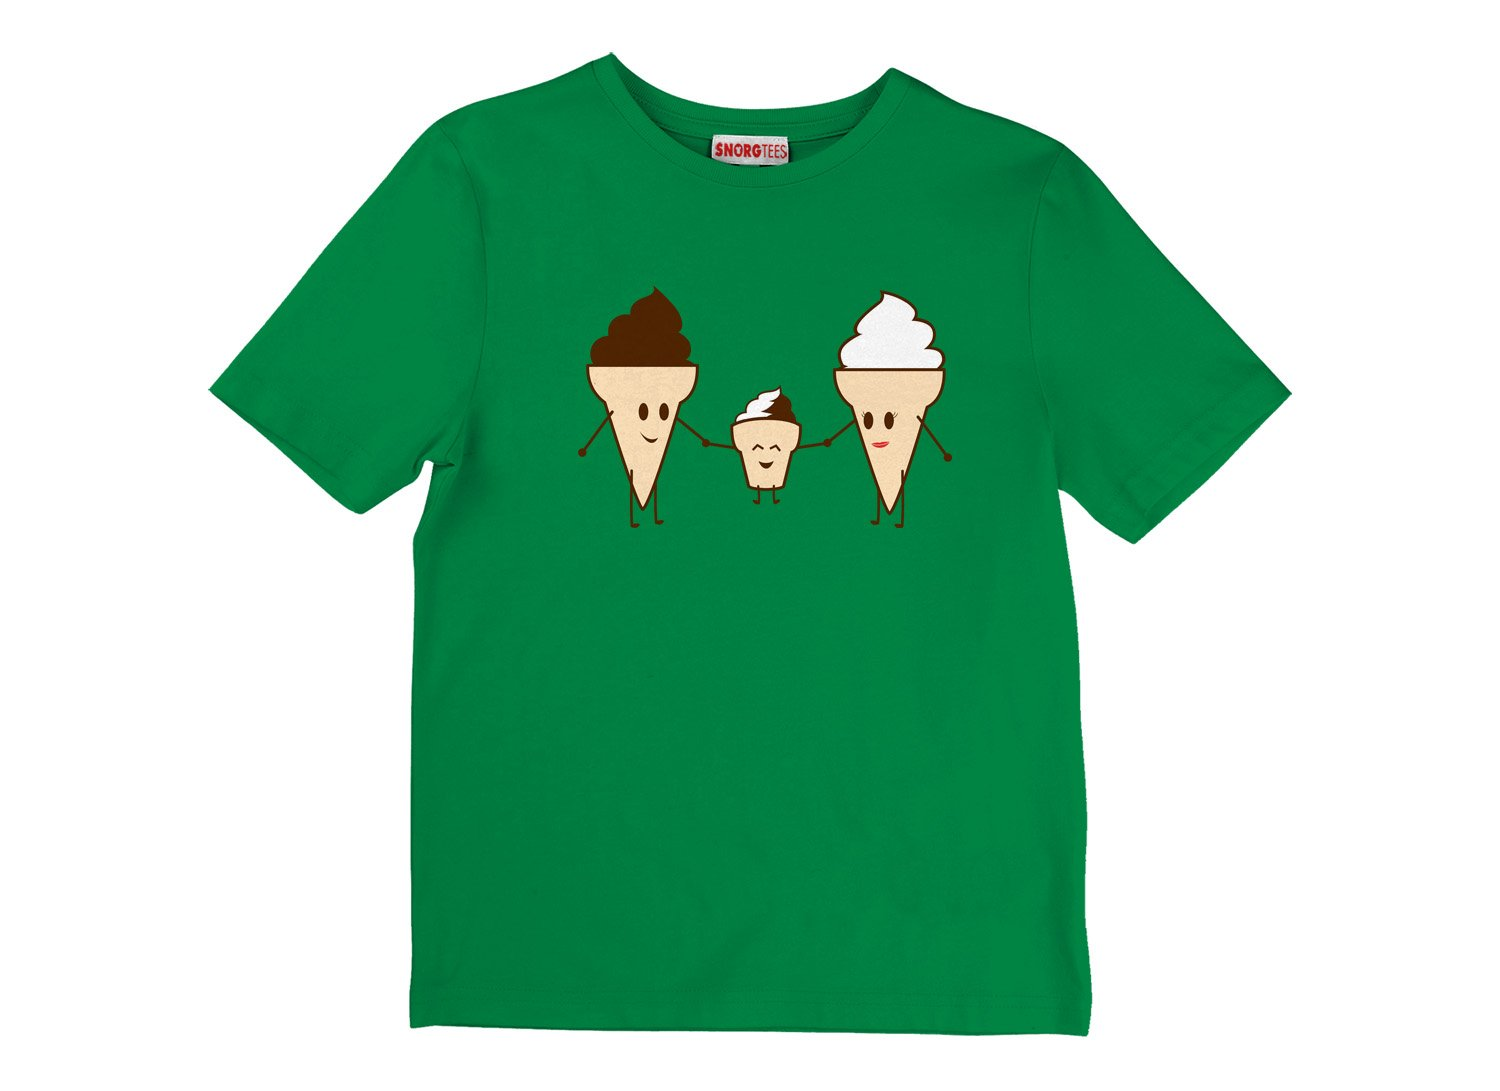 Ice Cream Family on Kids T-Shirt